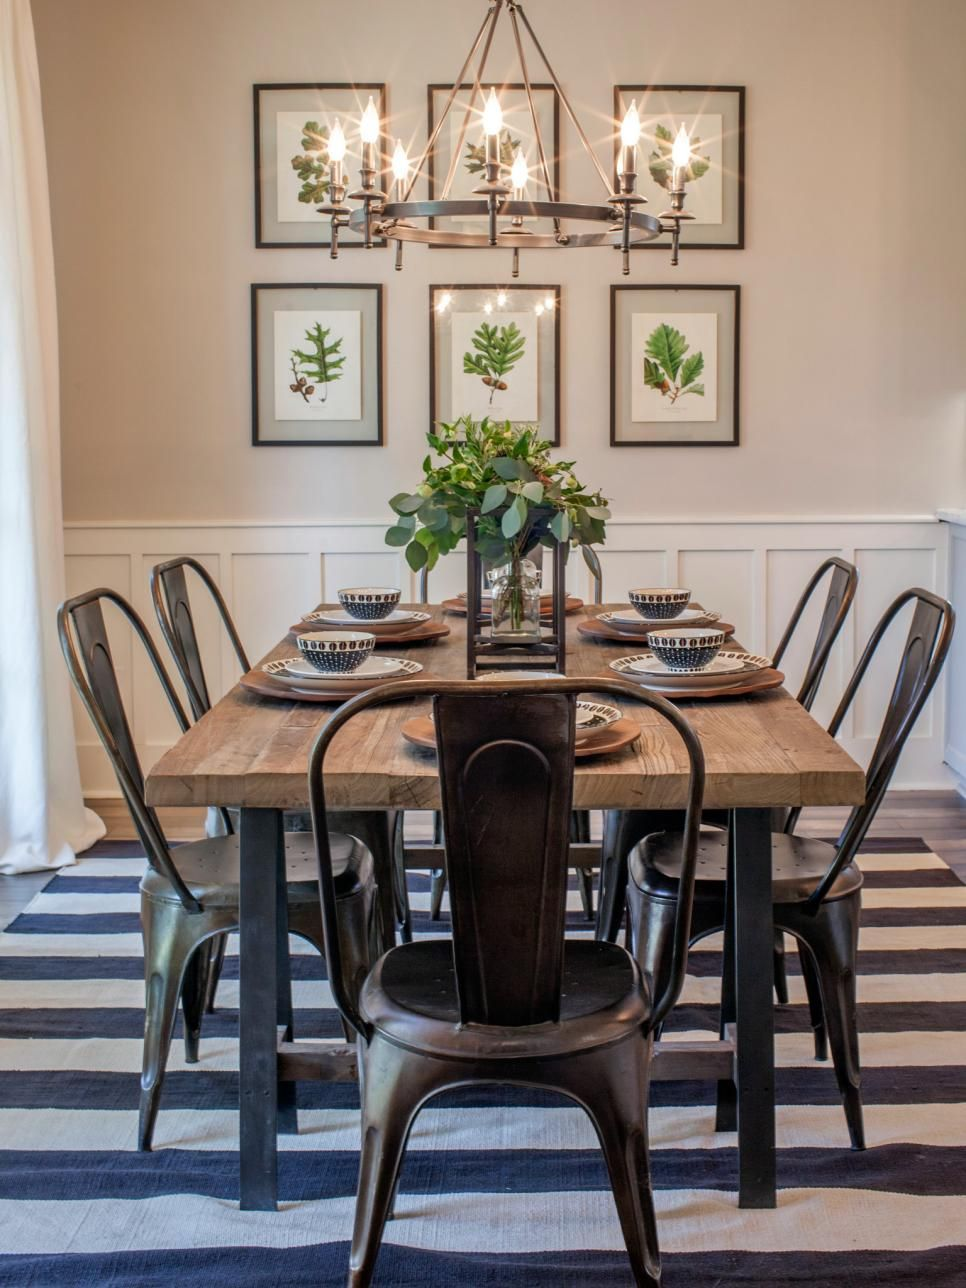 our 25 most-pinned photos of 2016 | farm style table, industrial